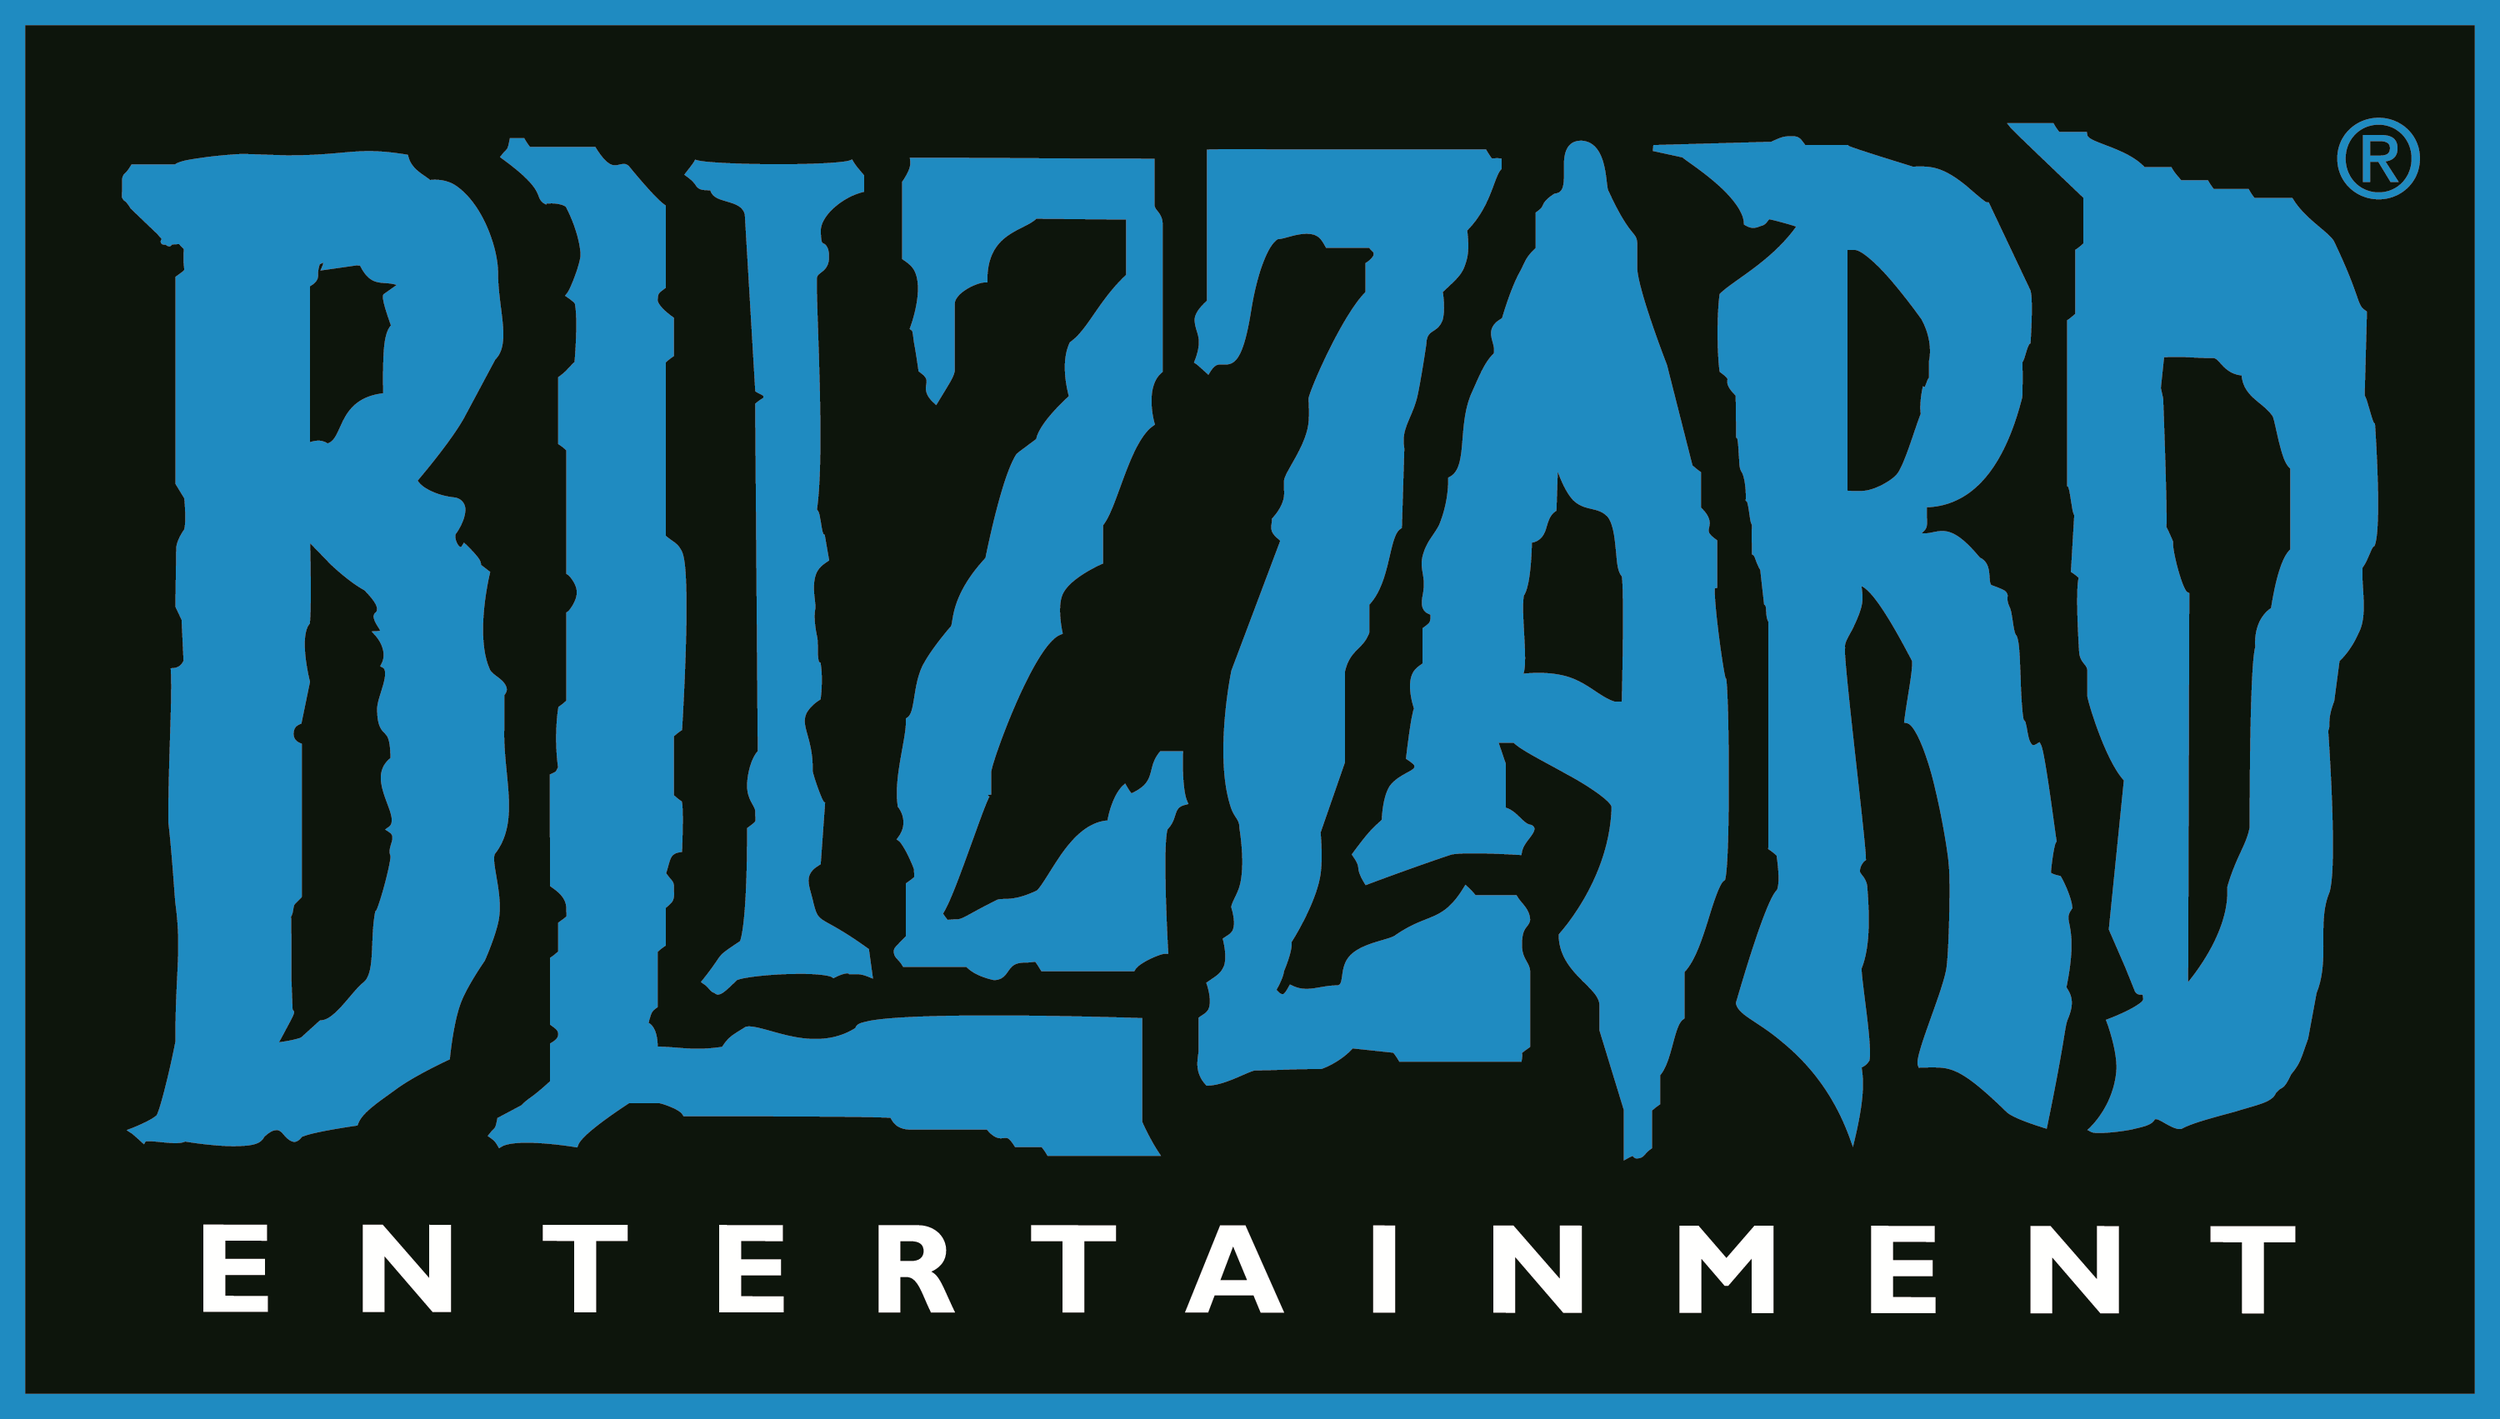 """Blizzard's most popular game """"WARCRAFT"""" - Shoots 2 Advert/promos for up coming releases    Shoppe Creates: 3 fully mobile Fantasy Armor suits, Large scale War Hammer, Muscle Suit and Magical staff, Priestess Warrior Garbs, and one Giant Spell book"""